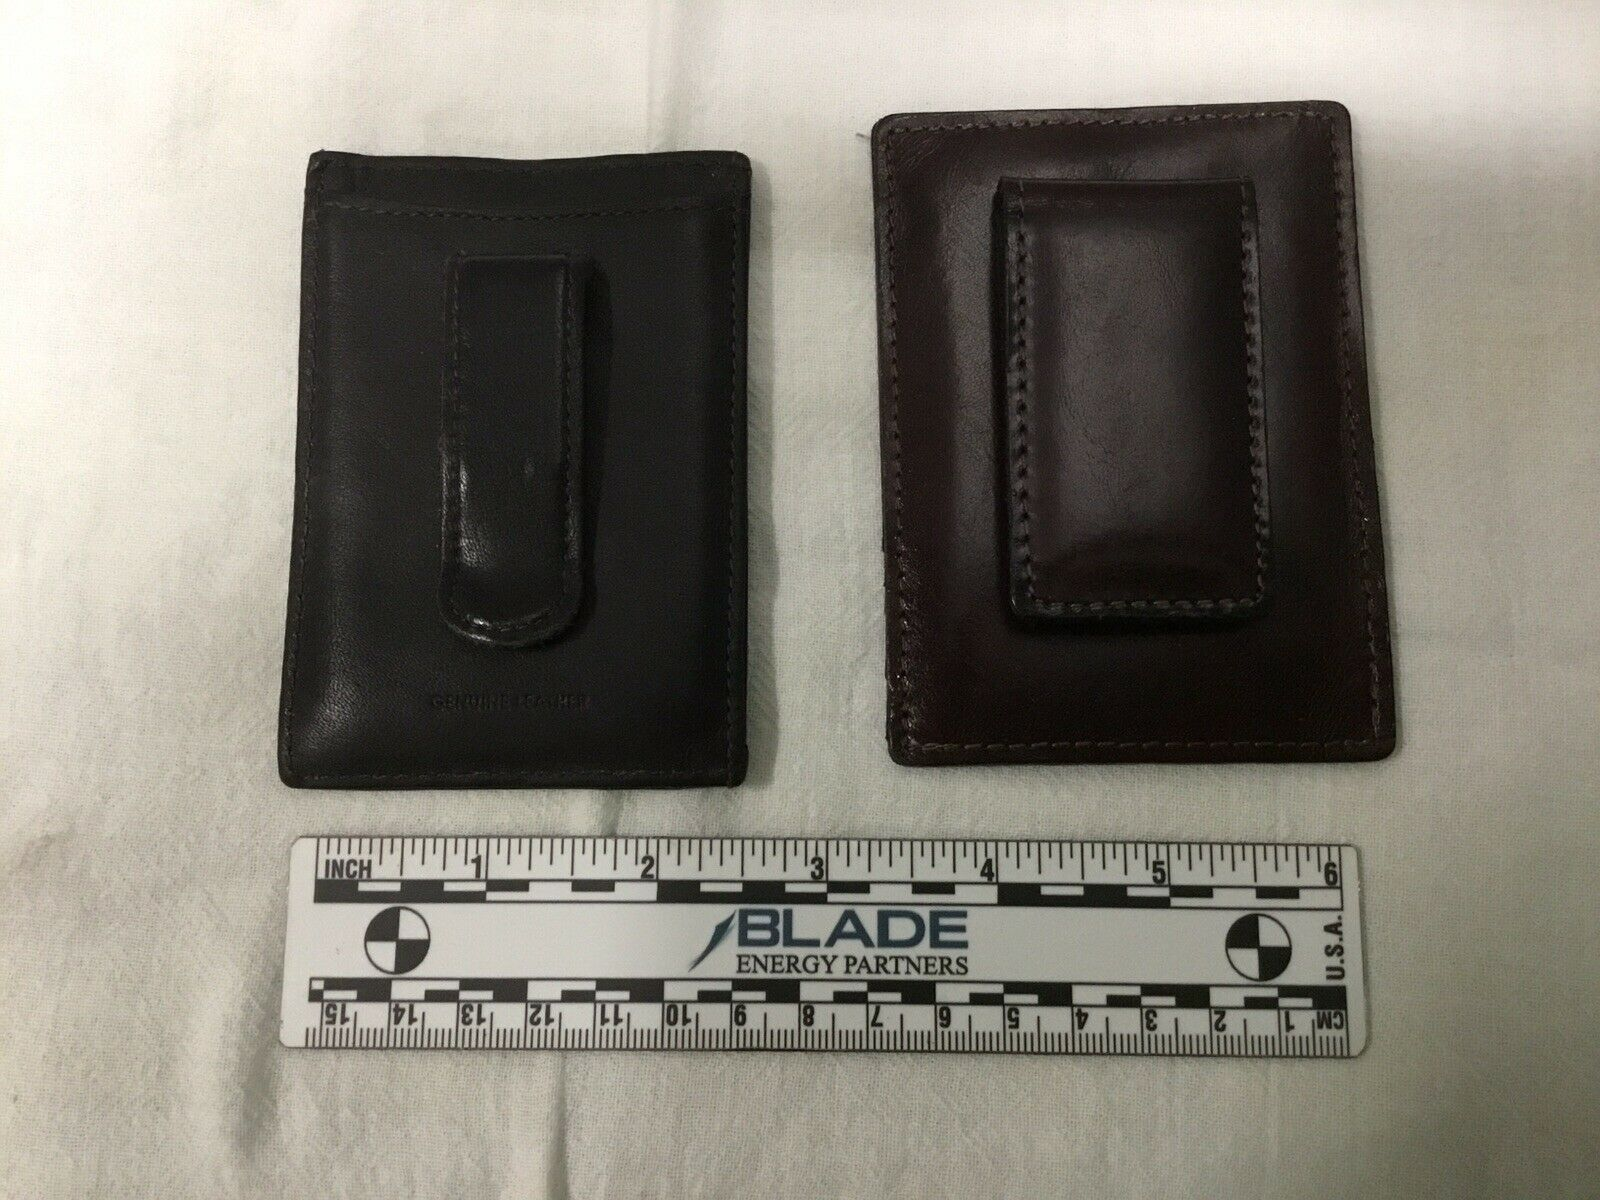 2 Men's Slim Leather Money Clip ID Card Wallets, New